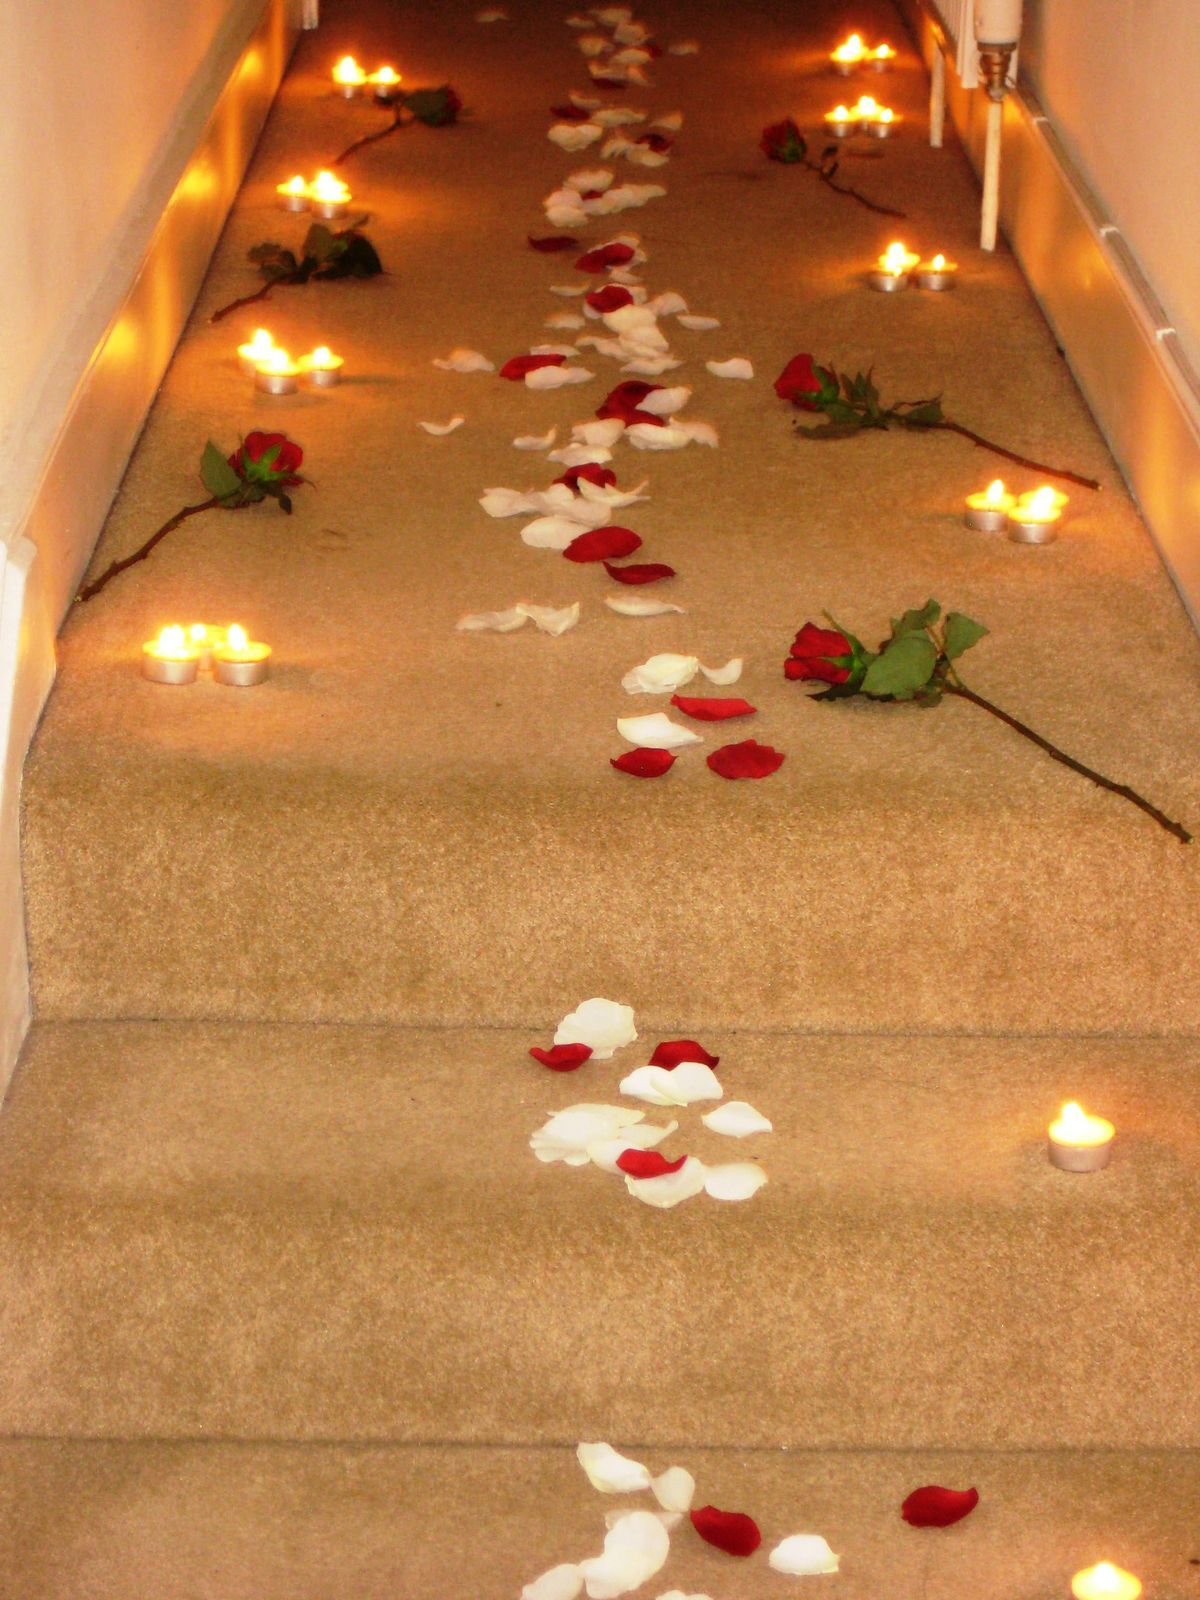 Images for romantic bedroom candles and roses our for Romantic bedroom ideas with candles